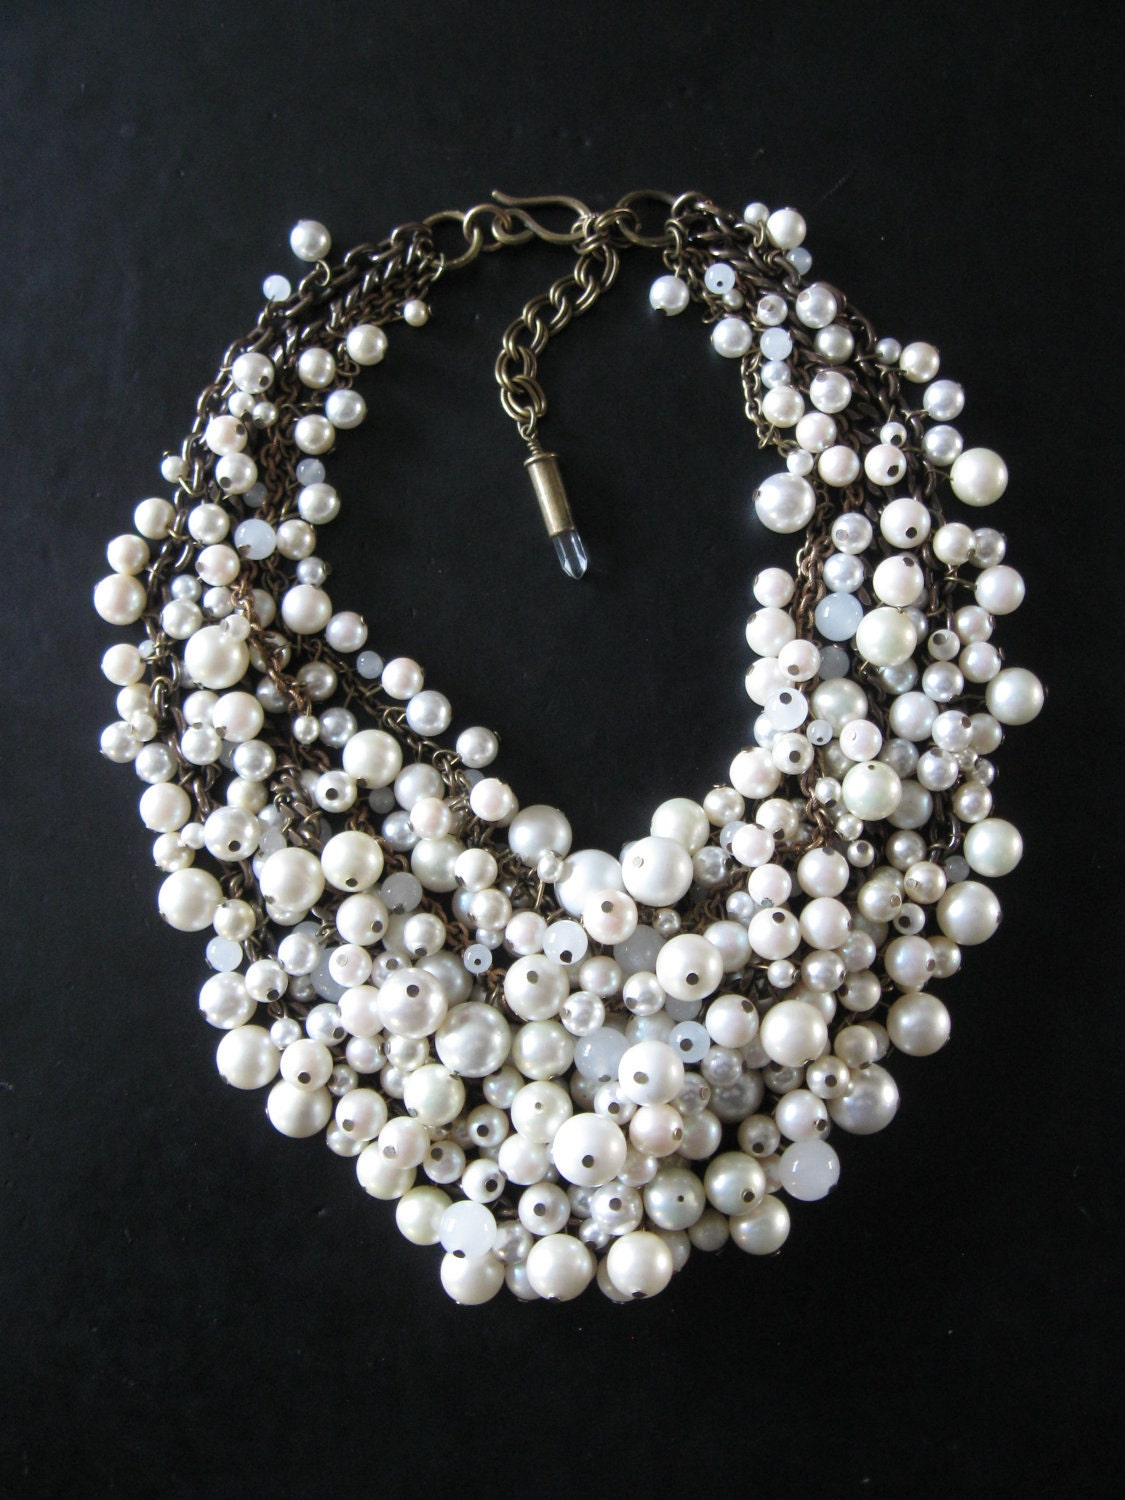 Pearl Statement Necklace - Mermaid Farts - Creamy White and Brass Recycled Faux Pearl Bib - Eco Friendly